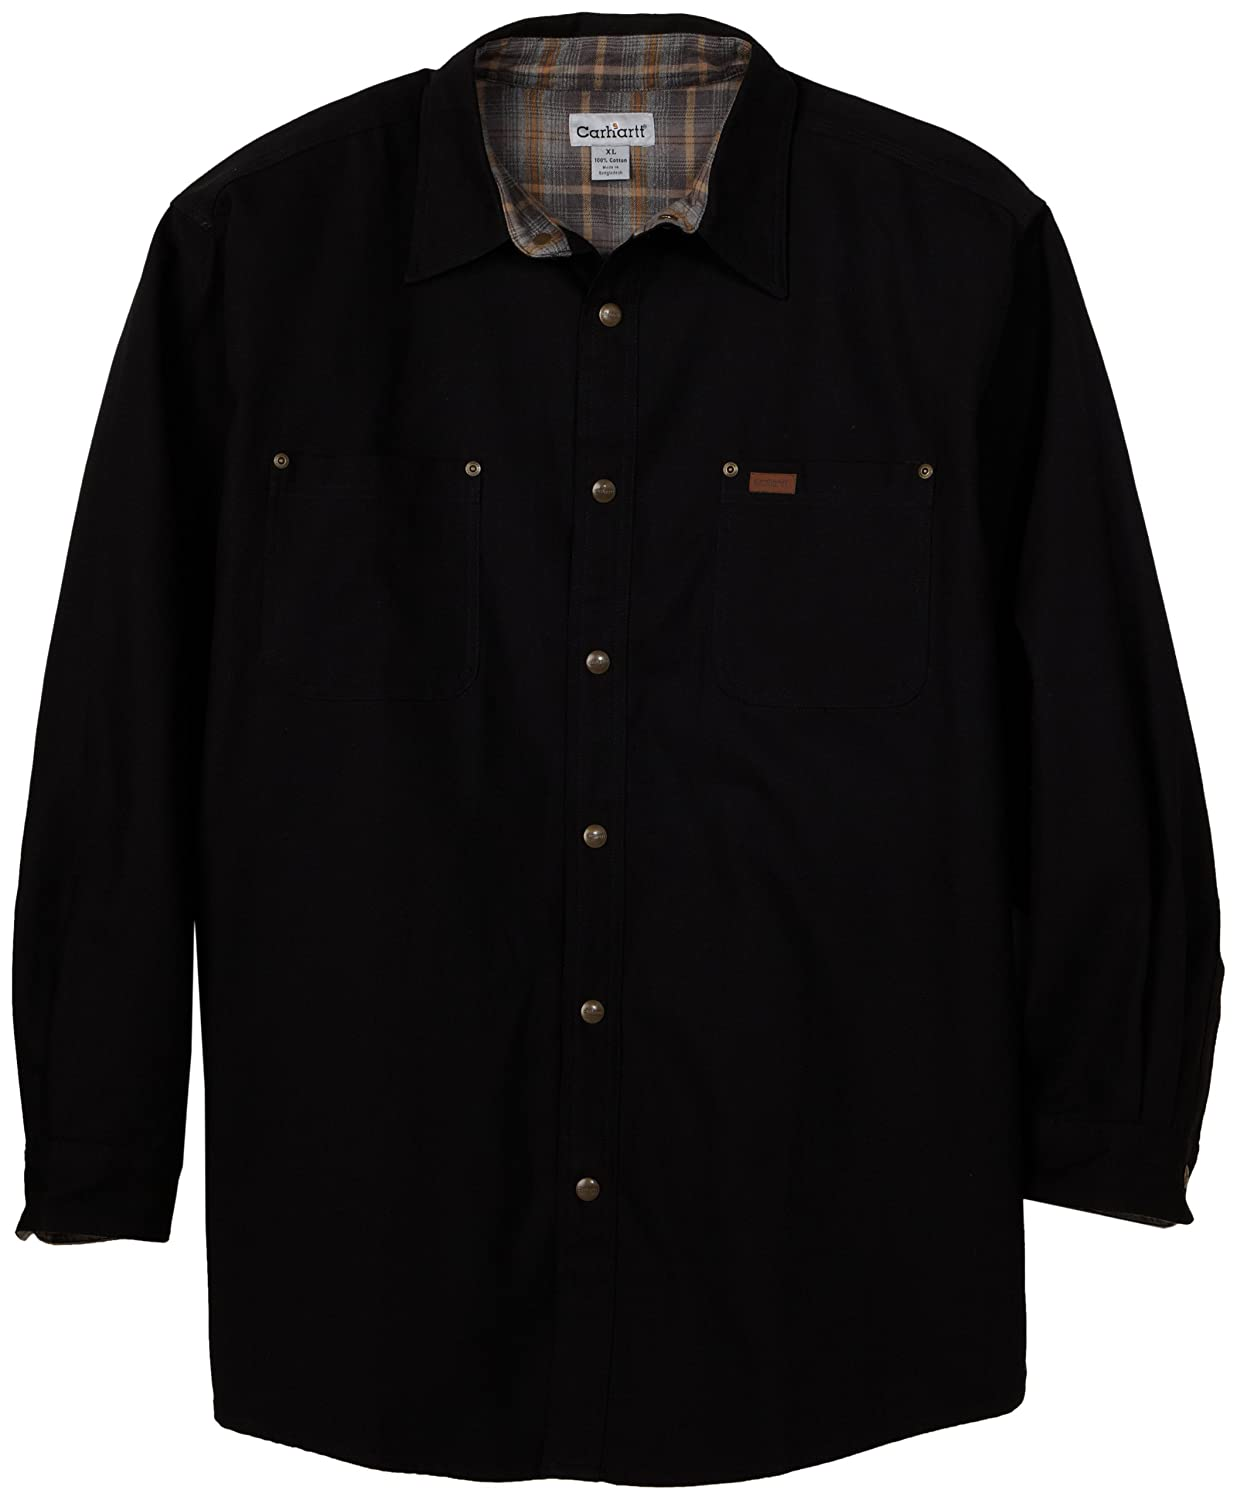 Black Canvas Shirt-Jacket by Carhartt